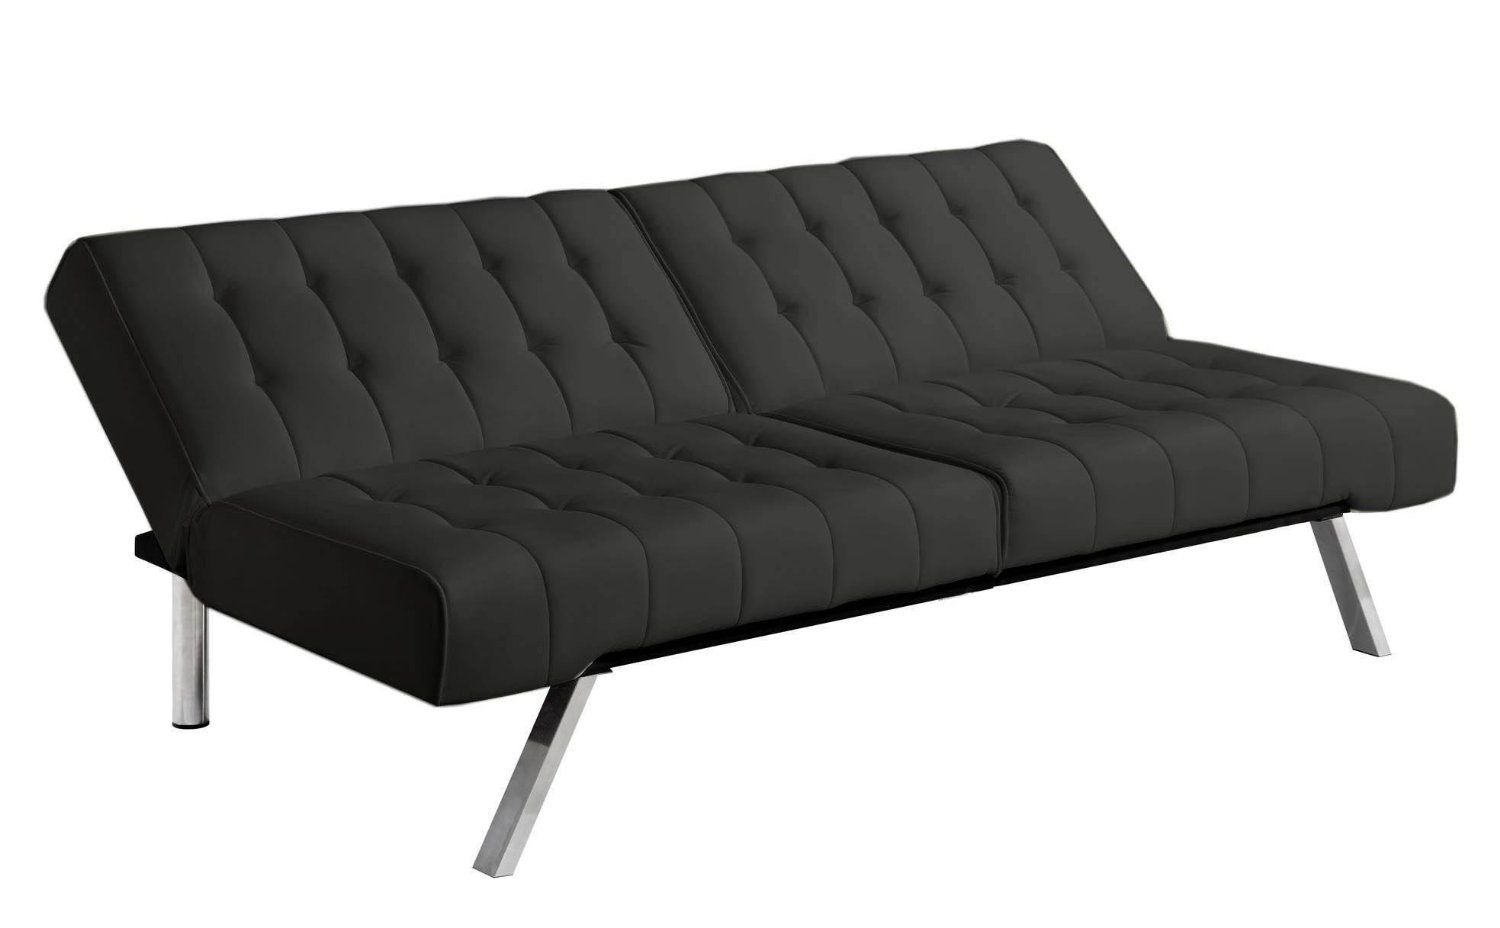 elegant kids fold out sofa concept-Stunning Kids Fold Out sofa Layout